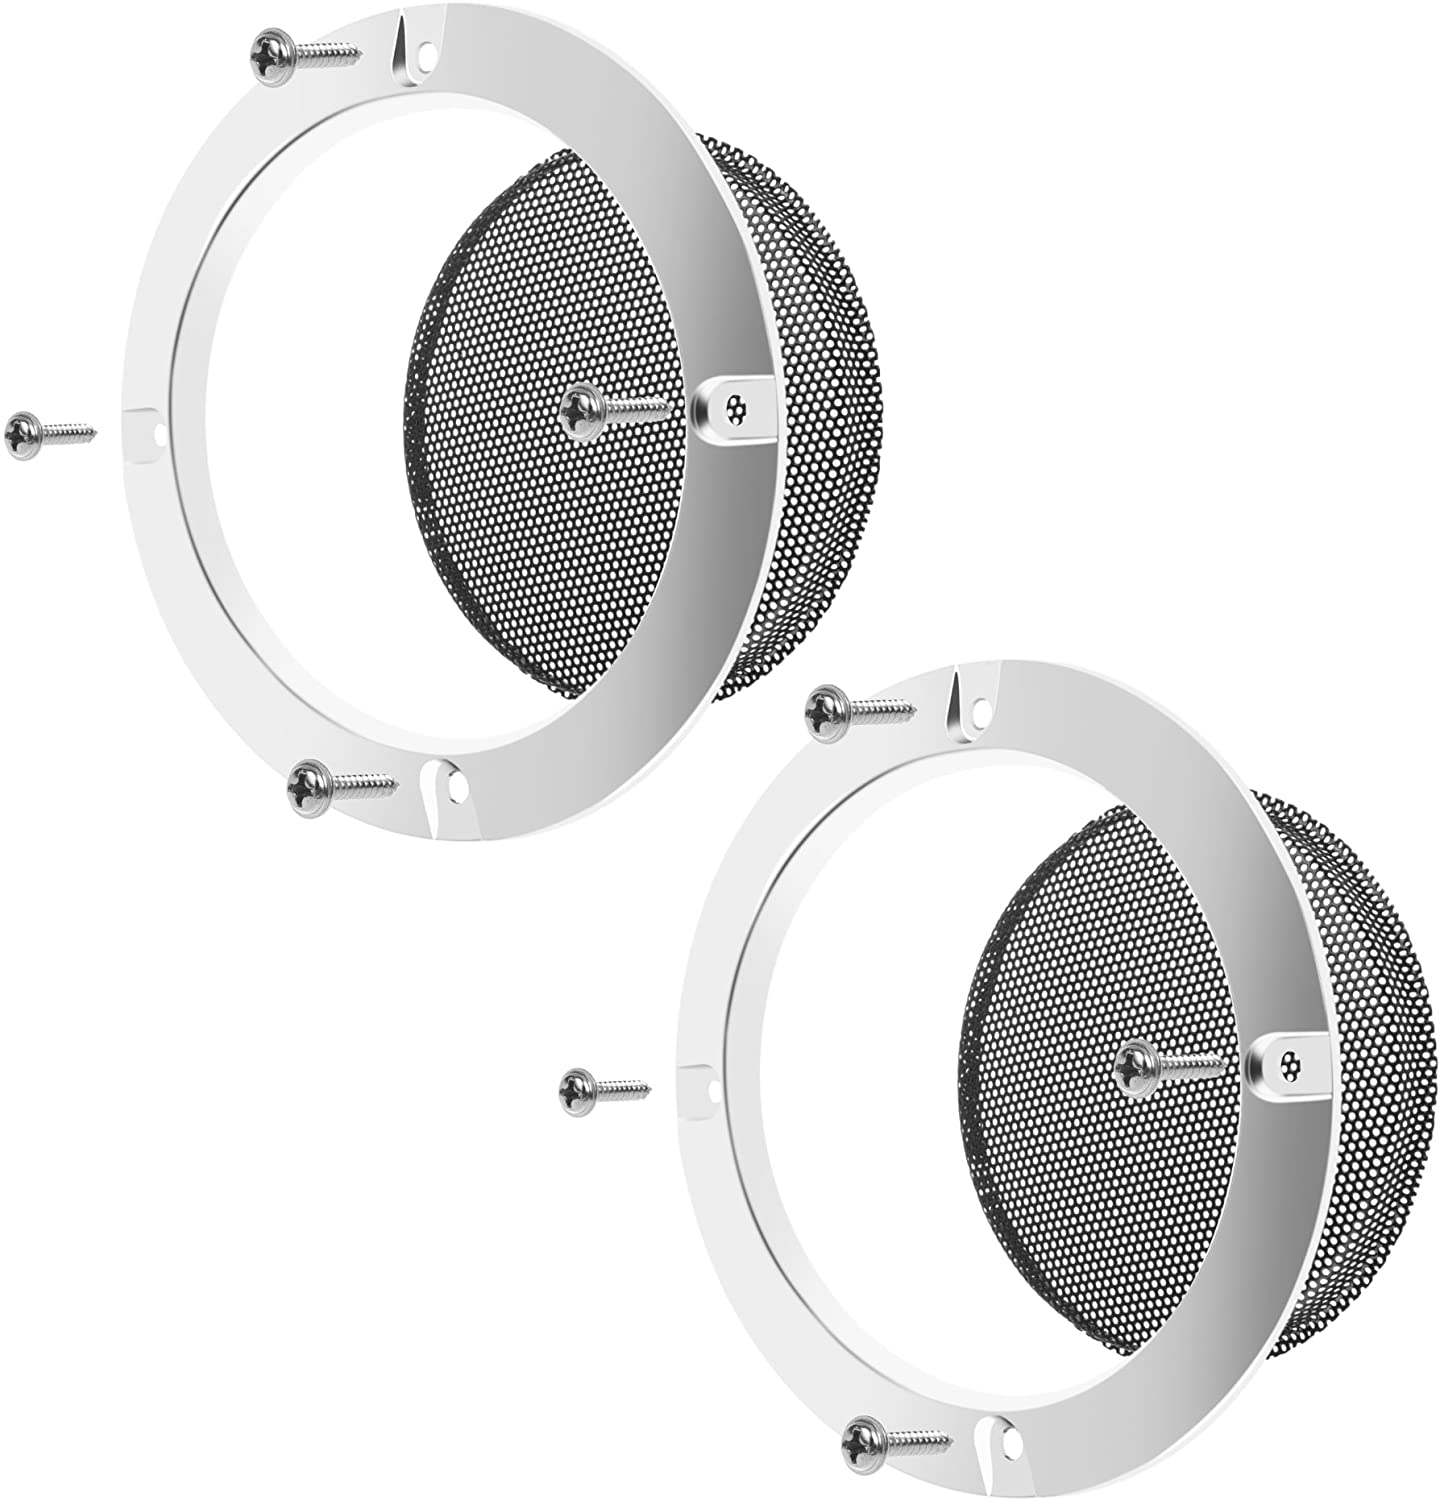 BCP 2 pcs 4 inch Silver Color Ring Black Mesh Speaker Decorative Circle Subwoofer Grill Cover Guard Protector with Screw